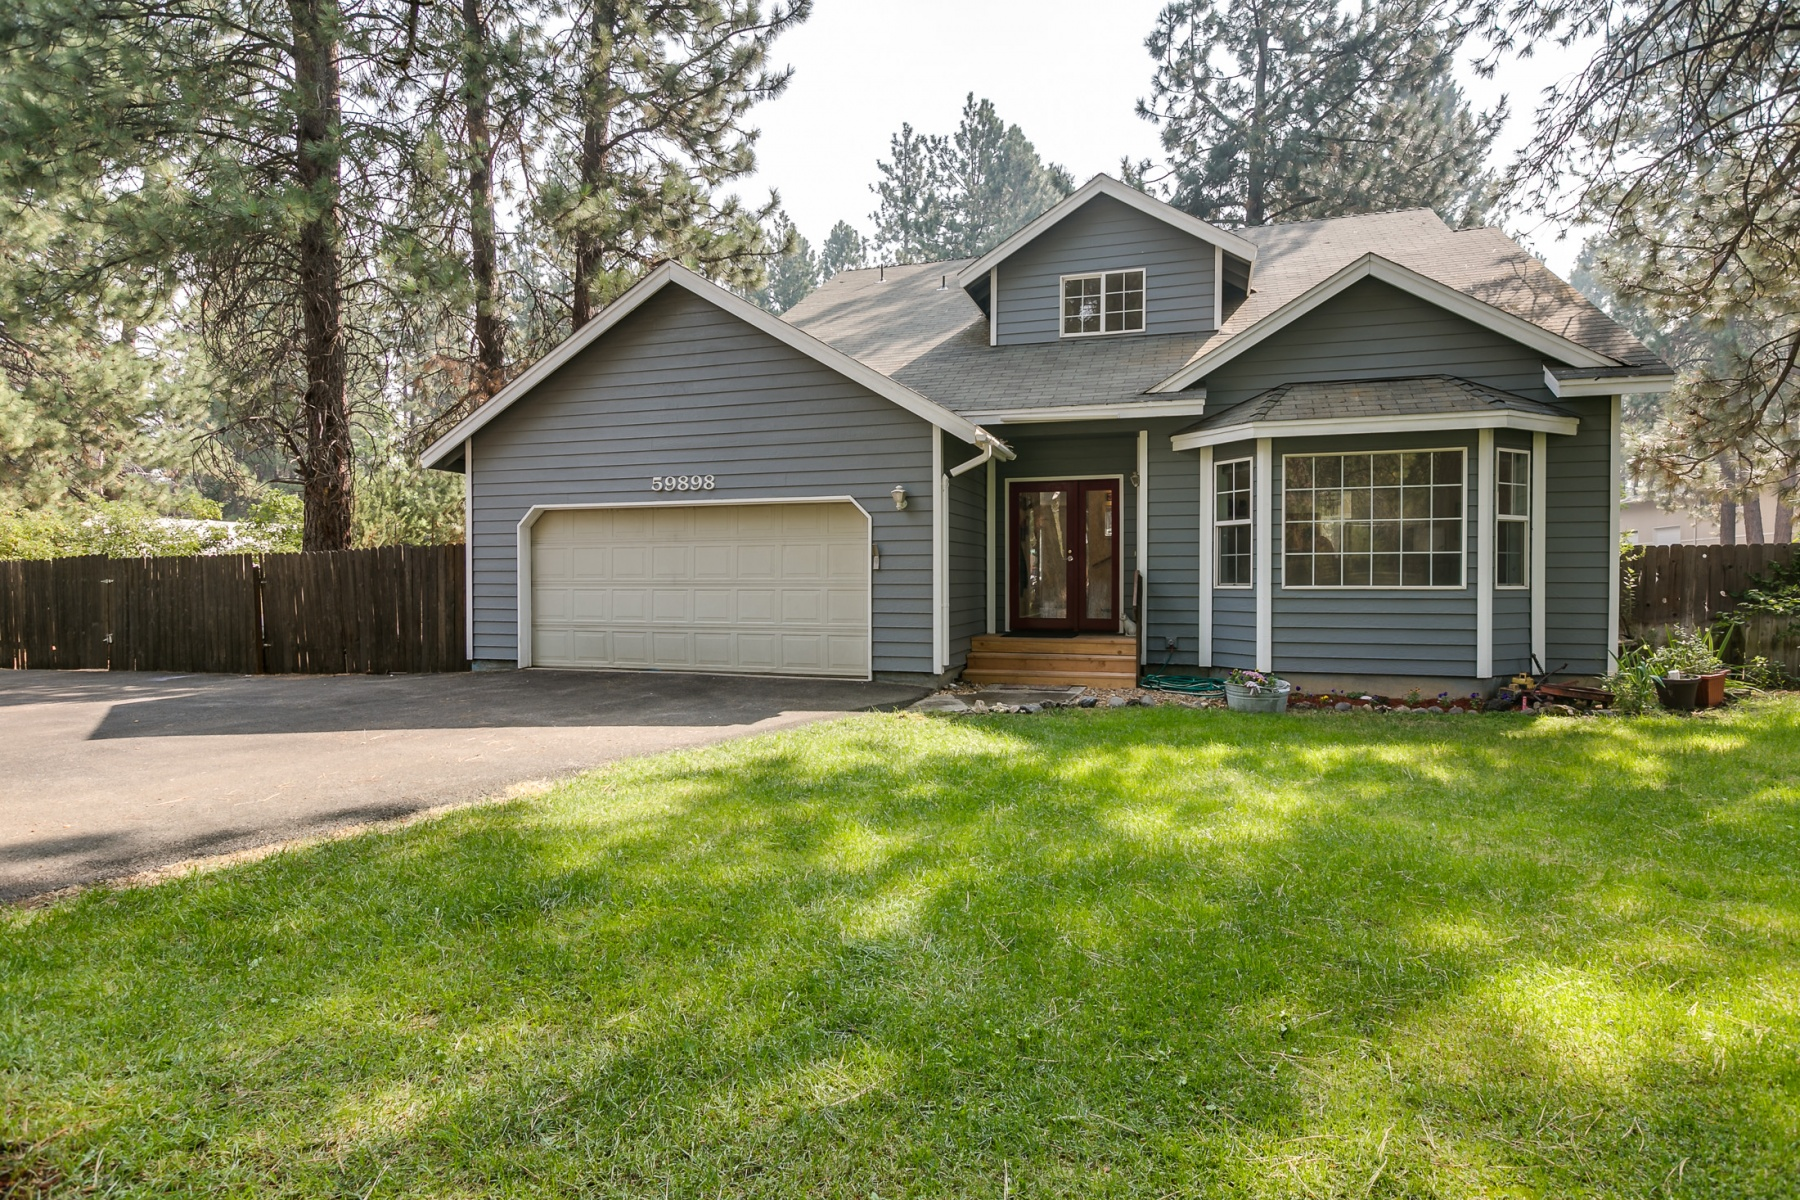 Single Family Home for Sale at Charming 4 Bedroom on an Acre 59898 Navajo Road Bend, Oregon, 97702 United States